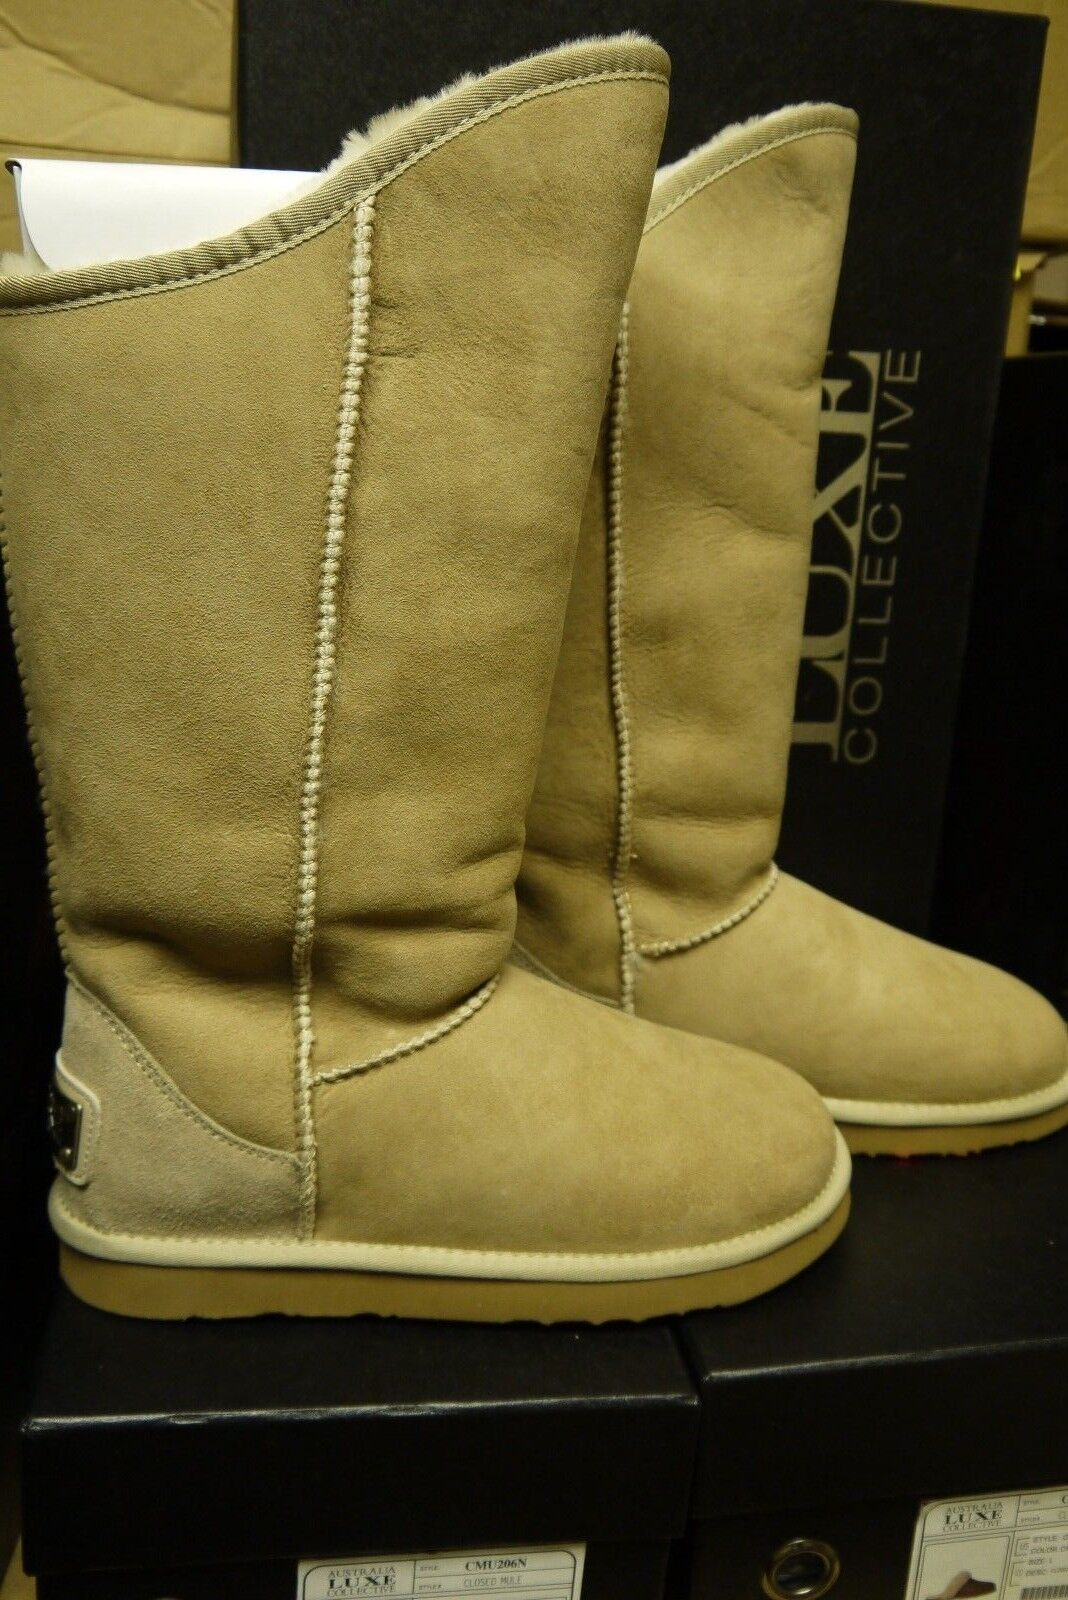 Australia Luxe Collective Collective Collective Cosy Tall Sand Size 5, 6, 7, 8, 9 Available- New 41d429